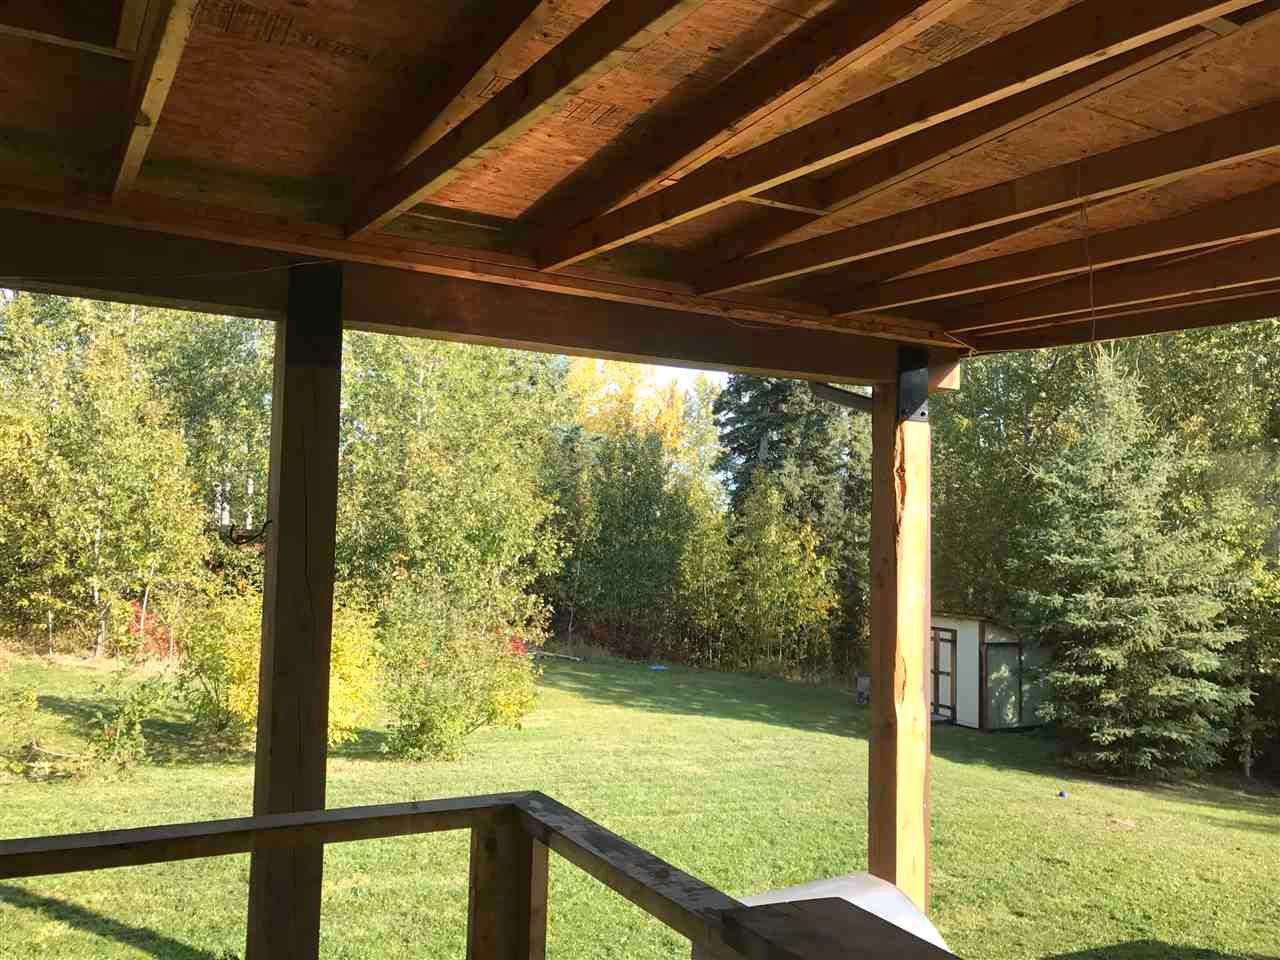 Main Photo: 14655 COFFEE CREEK SUBDIV: Charlie Lake Manufactured Home for sale (Fort St. John (Zone 60))  : MLS®# R2562499